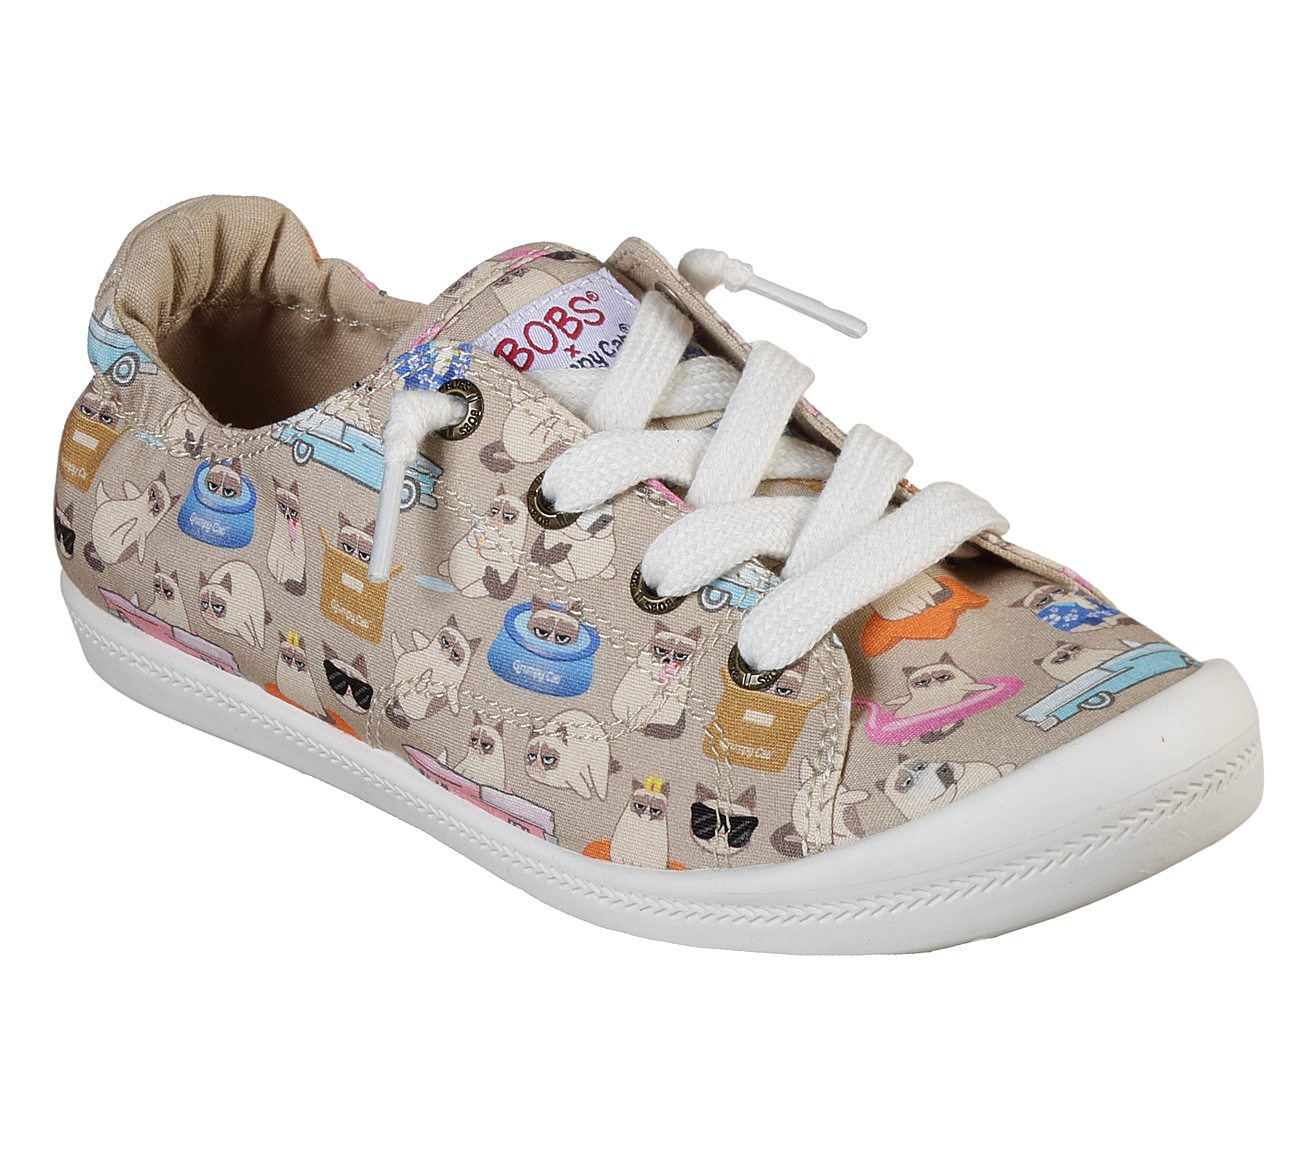 Skechers Grumpy Cat x BOBS Beach Bingo - Wet Blanket Shoes